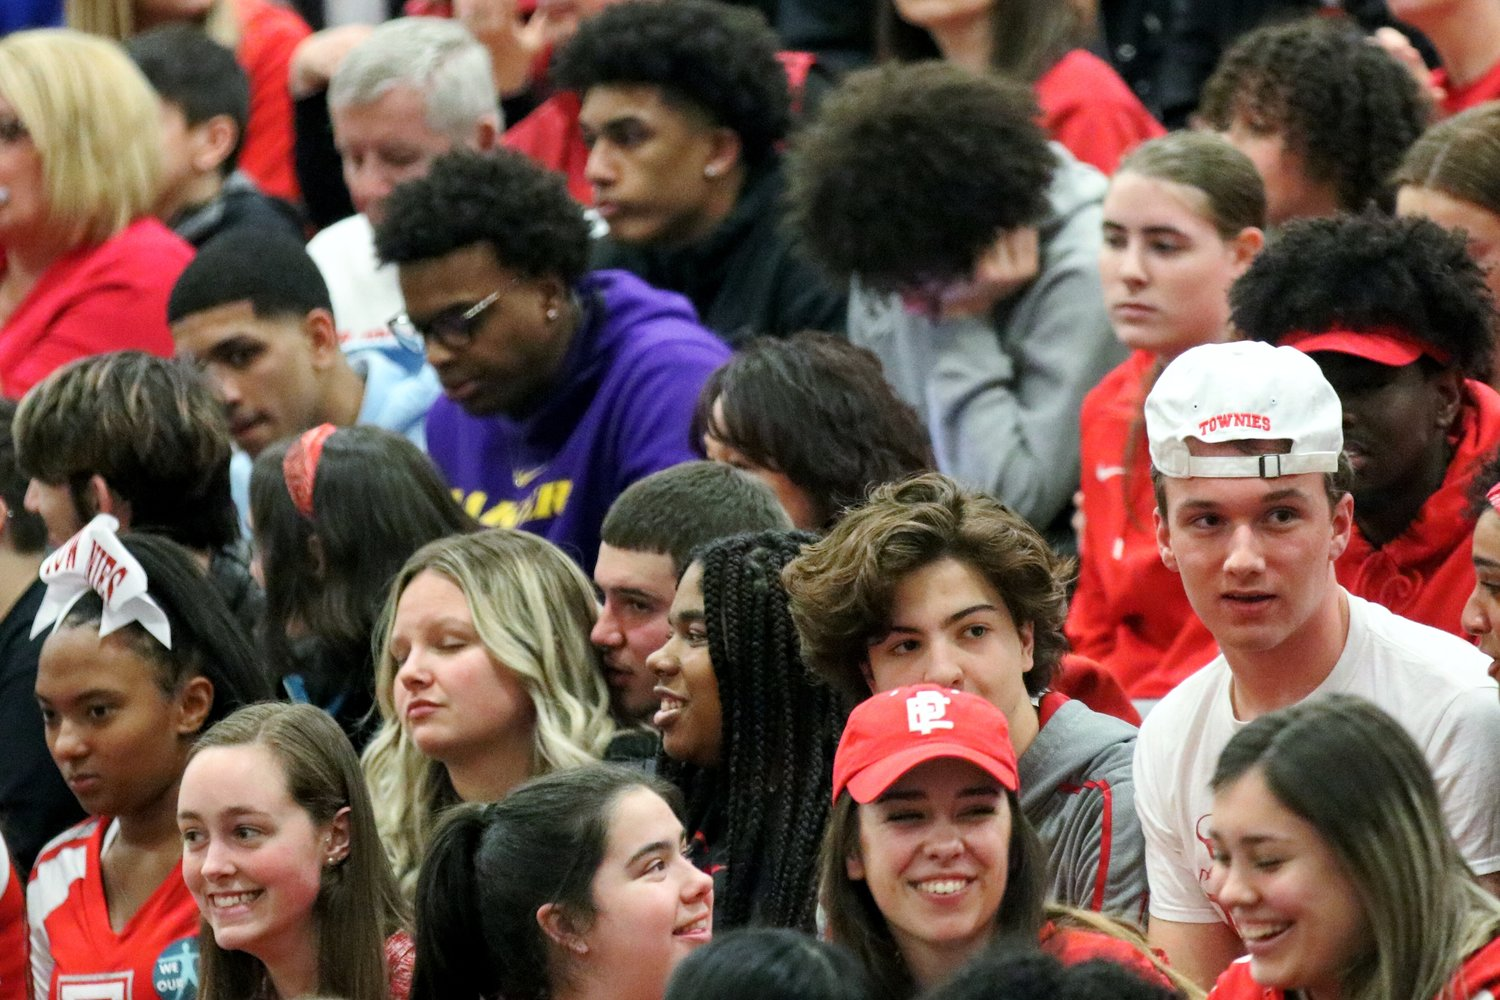 Townie fans at the final four game against Hendricken at CCRI in Warwick last week.